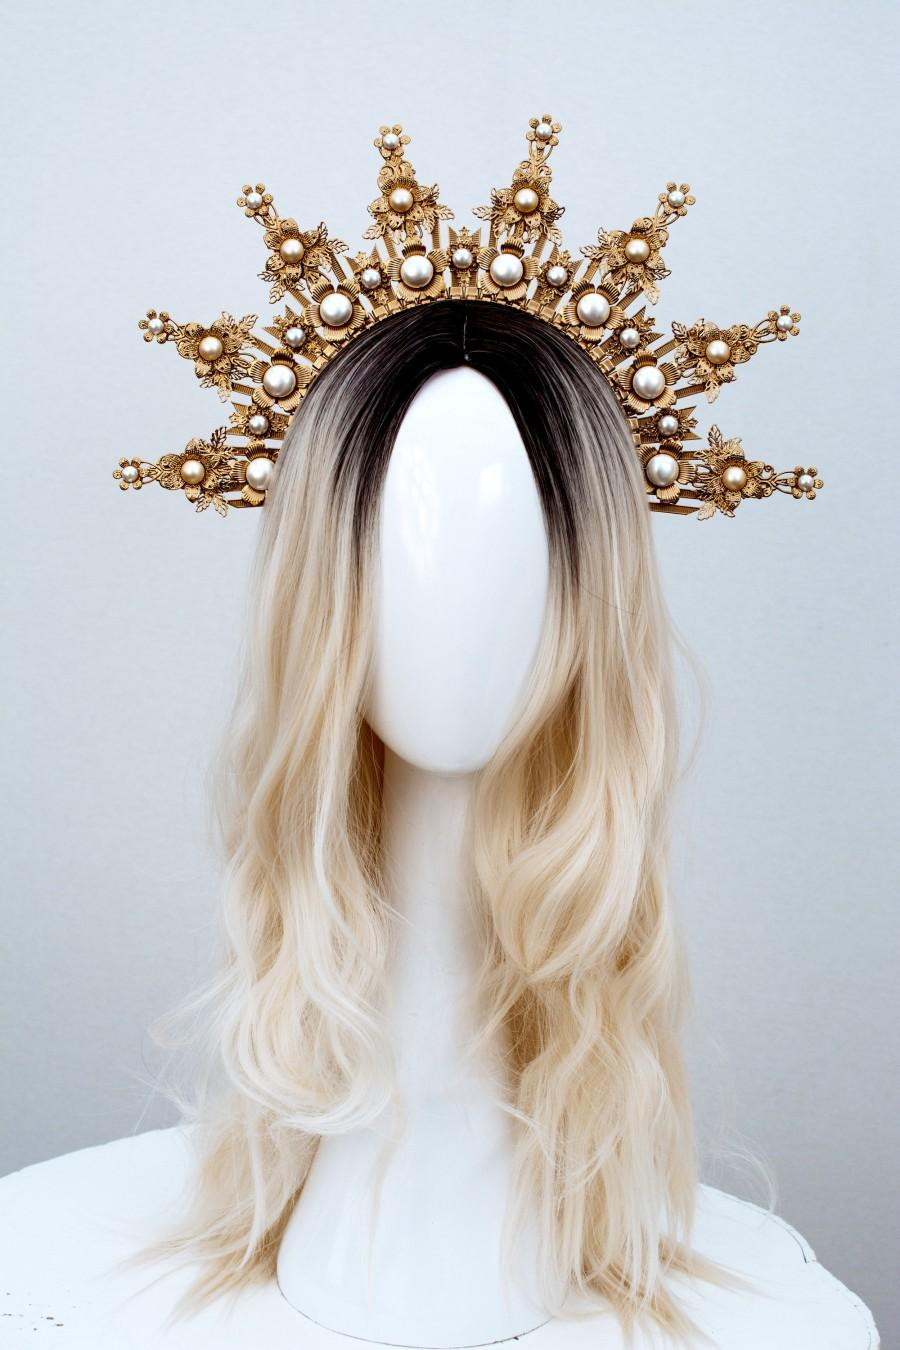 Wedding - Gold Halo crown, Glitter Halo Headpiece, Festival crown, Festival headpiece, Met Gala Crown, Sunburst Crown, Gold Zip Tie Crown, Mary Crown